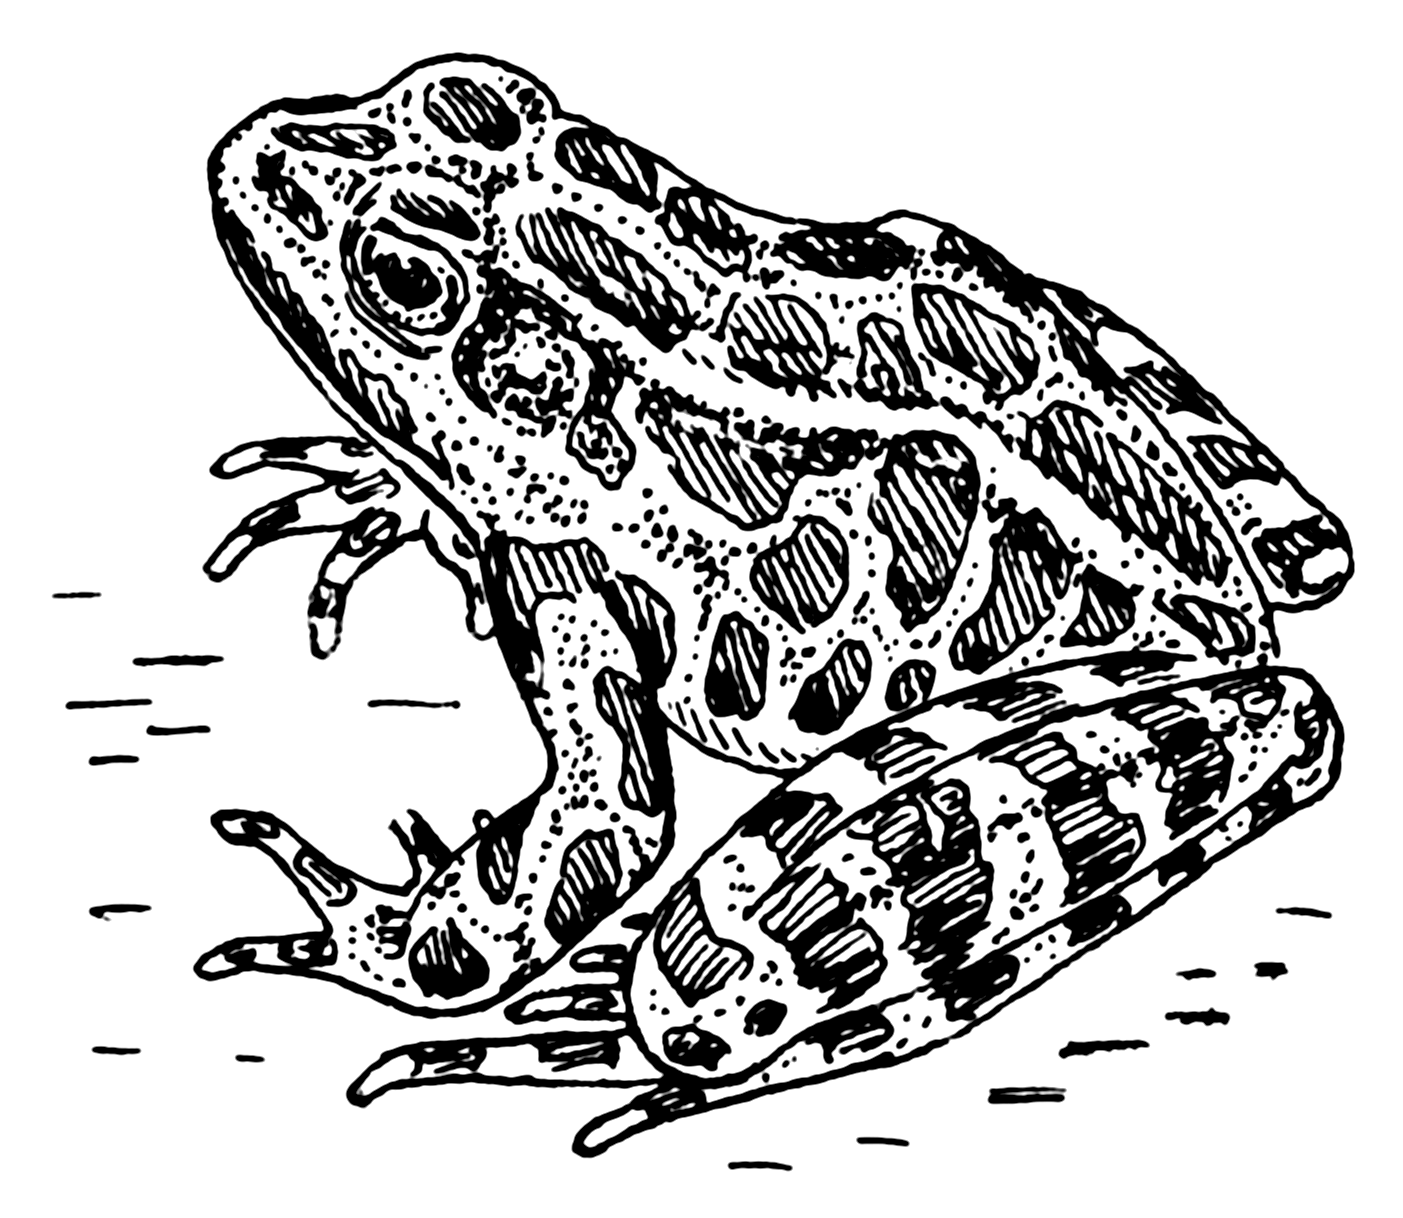 Line Drawing Frog : File frog psf wikimedia commons